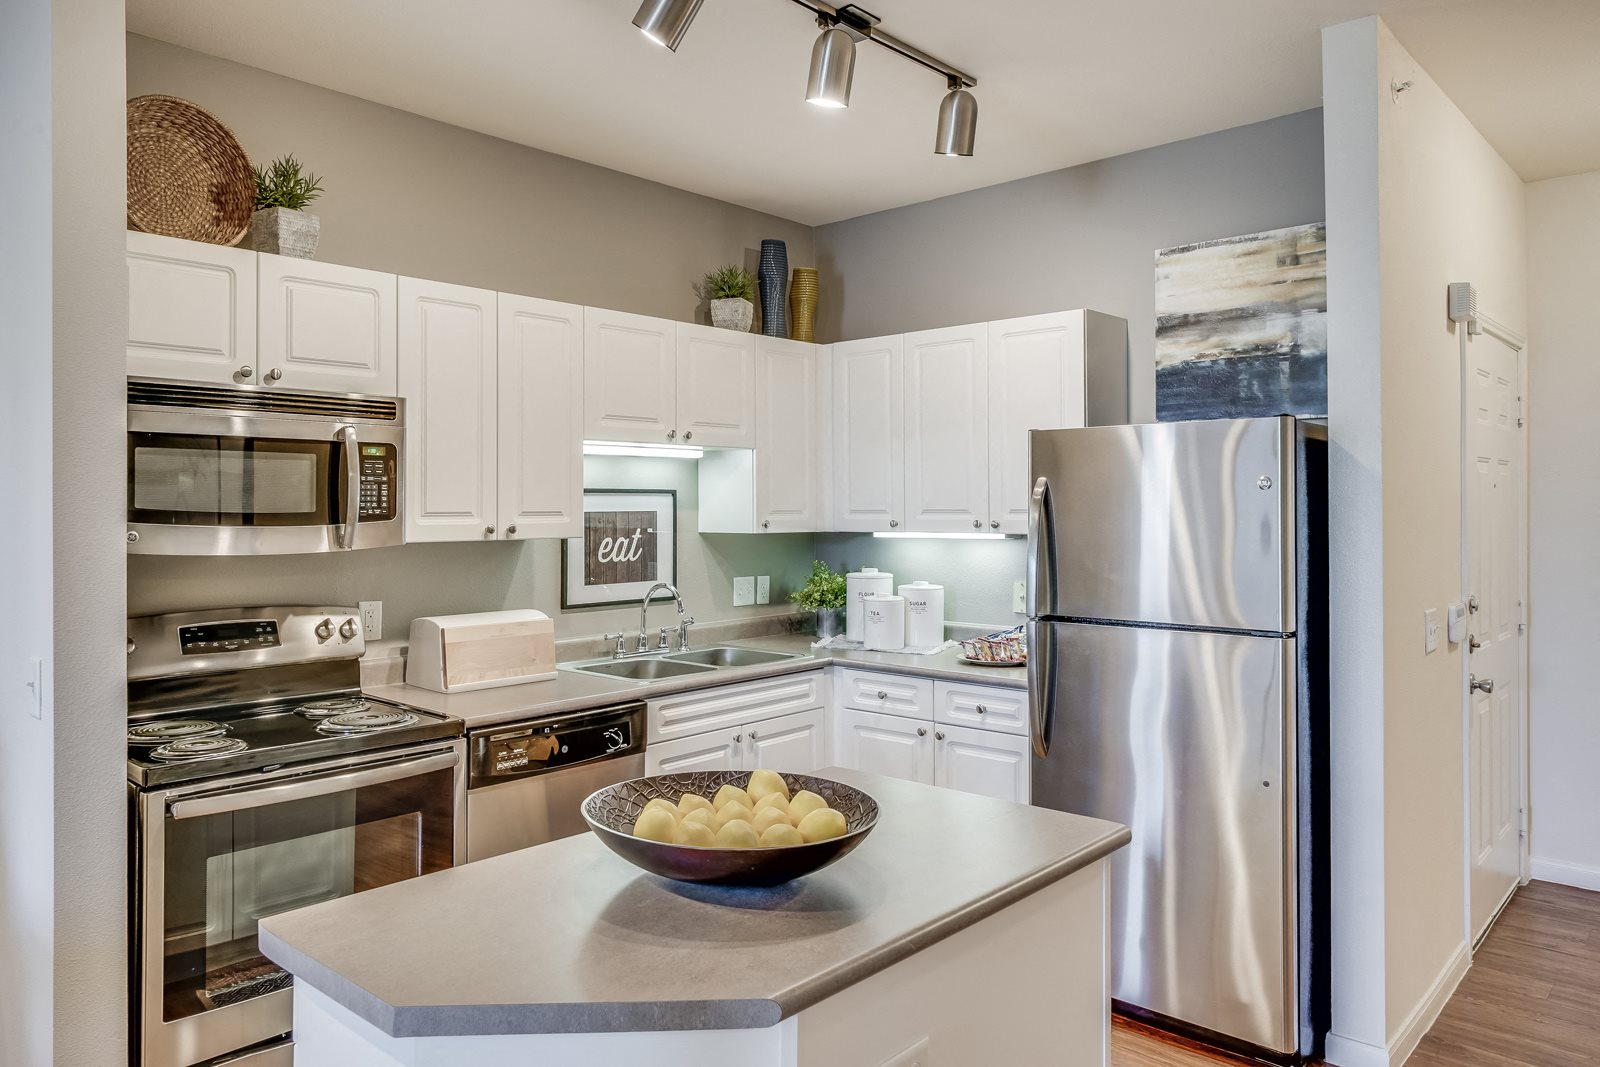 Gourmet Kitchens with Built- In Islands at Windsor at Meadow Hills, 4260 South Cimarron Way, Aurora